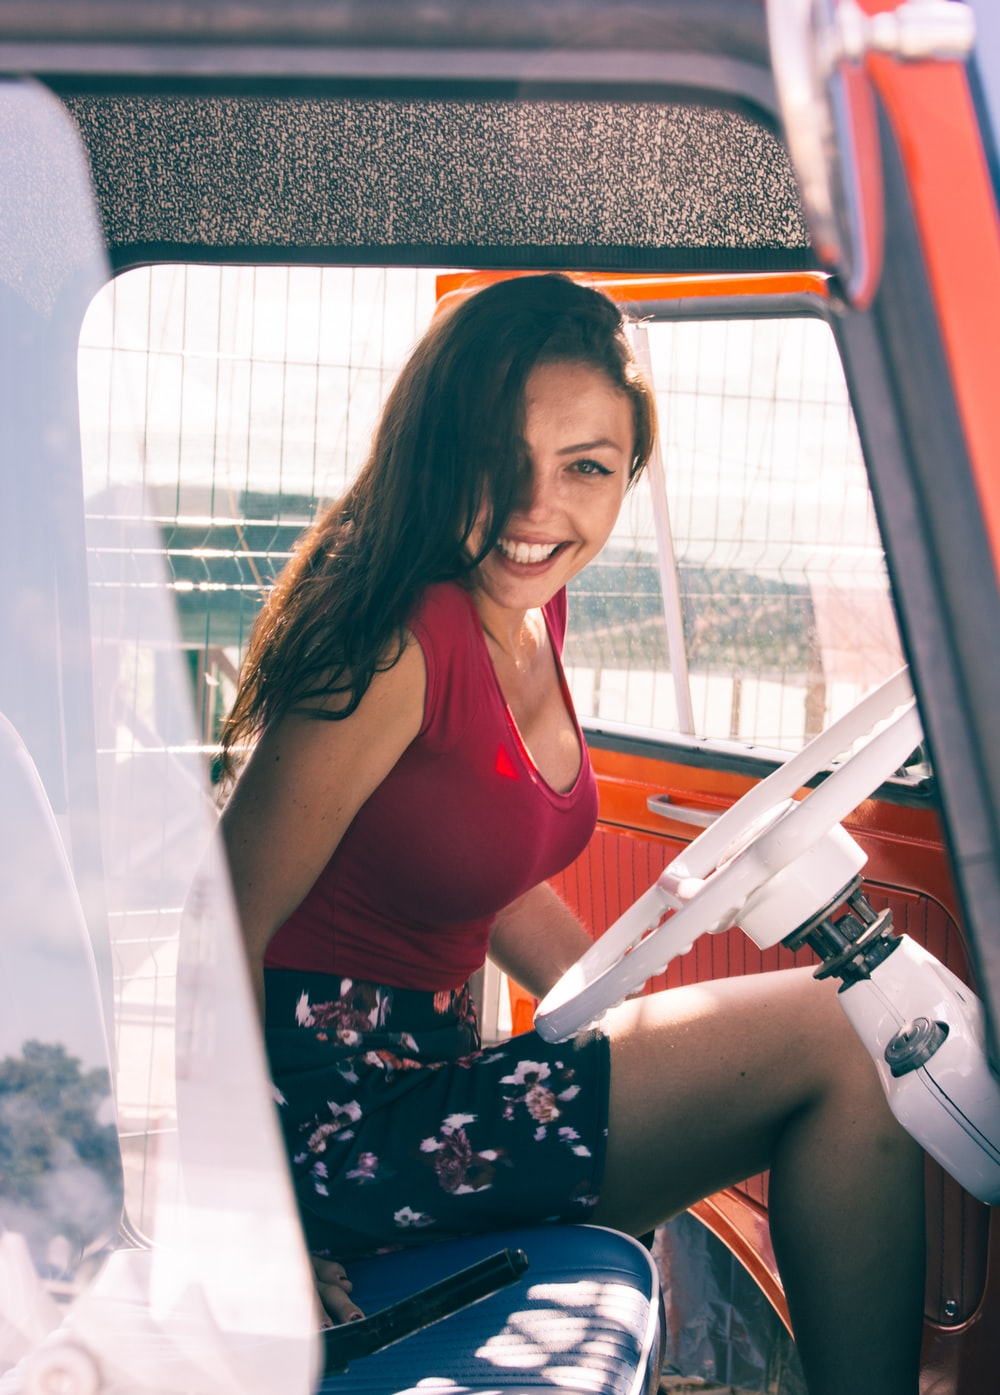 woman wearing red tank top and multicolored floral skirt while sitting inside vehicle